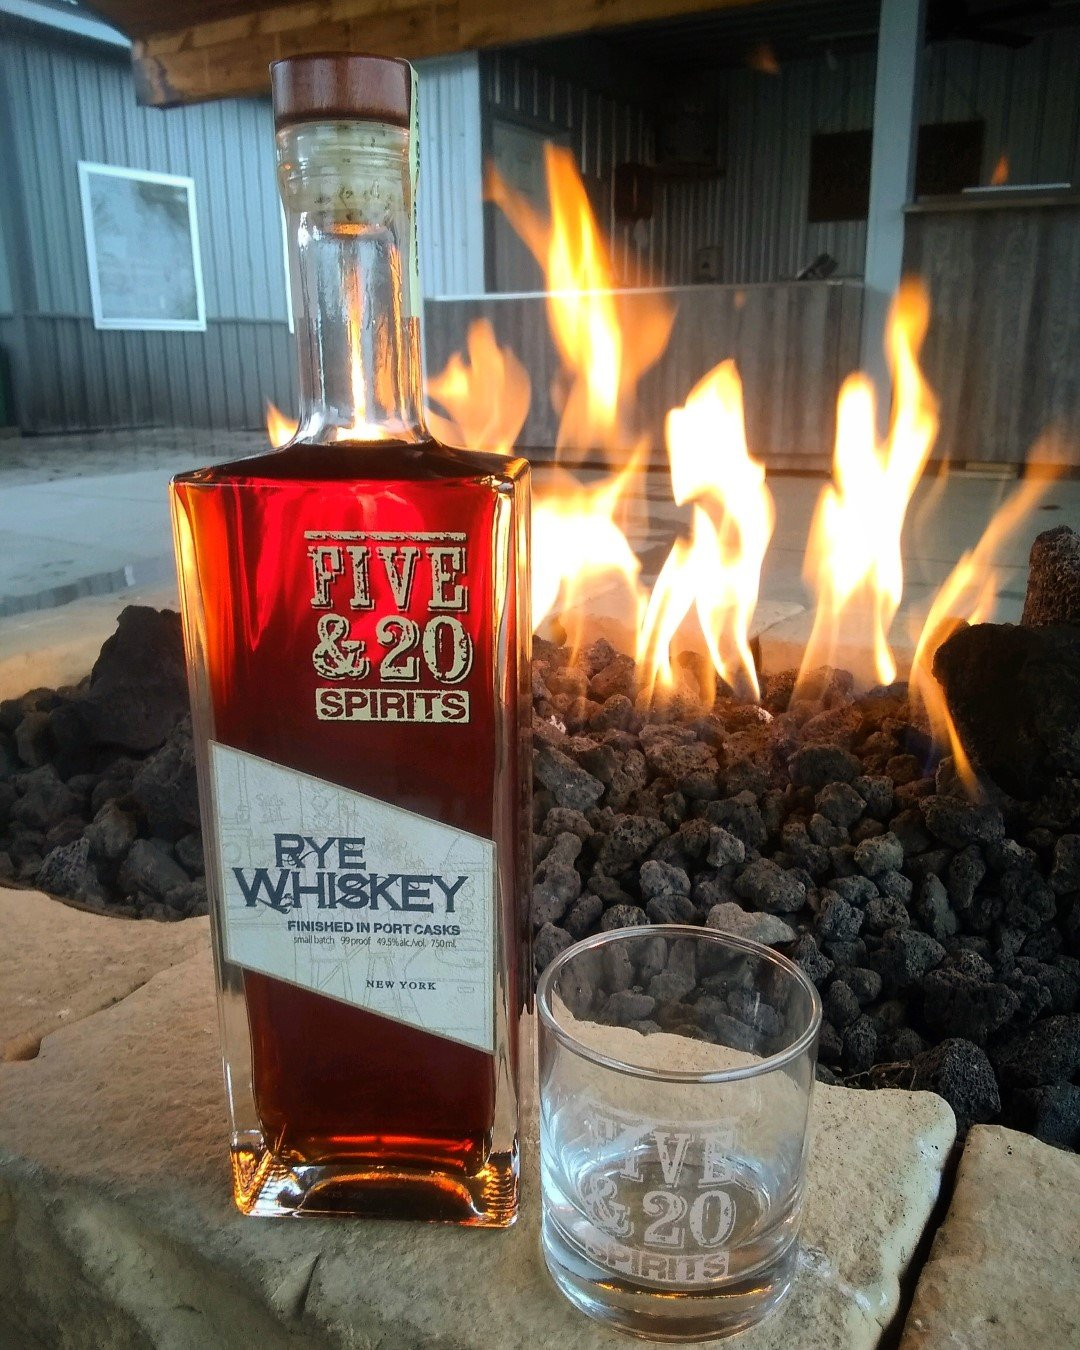 Five & 20 Spirits Rye Whiskey Finished in Port Casks